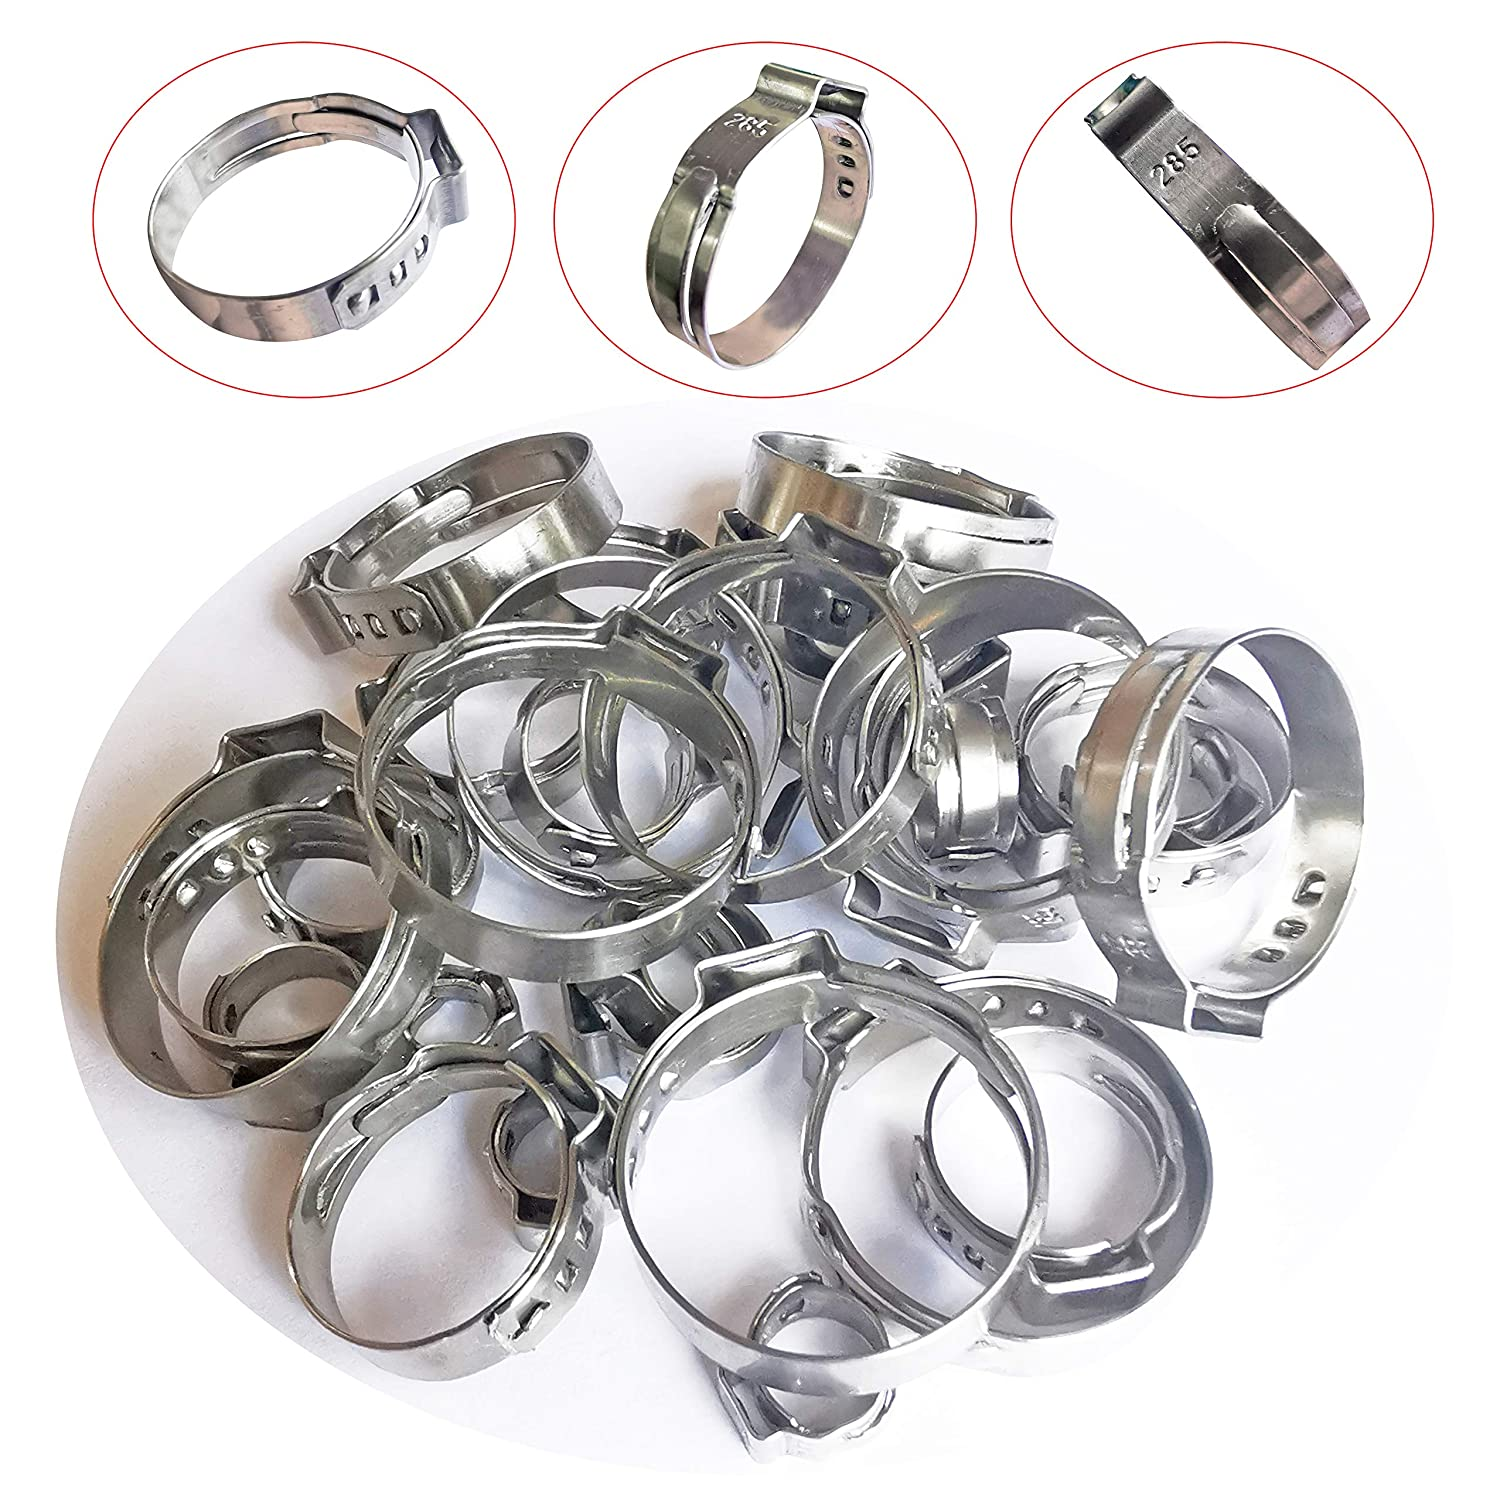 WYKA 22.4-25.6mm Range Stainless Steel-304 Single Ear Hose Clamps,Crimp Pinch Fitting,Fuel Line Hose Clips Water Pipe Air Tube Silicone Vacuum Hose Clamp Fastener,57//64-1,50 Pack